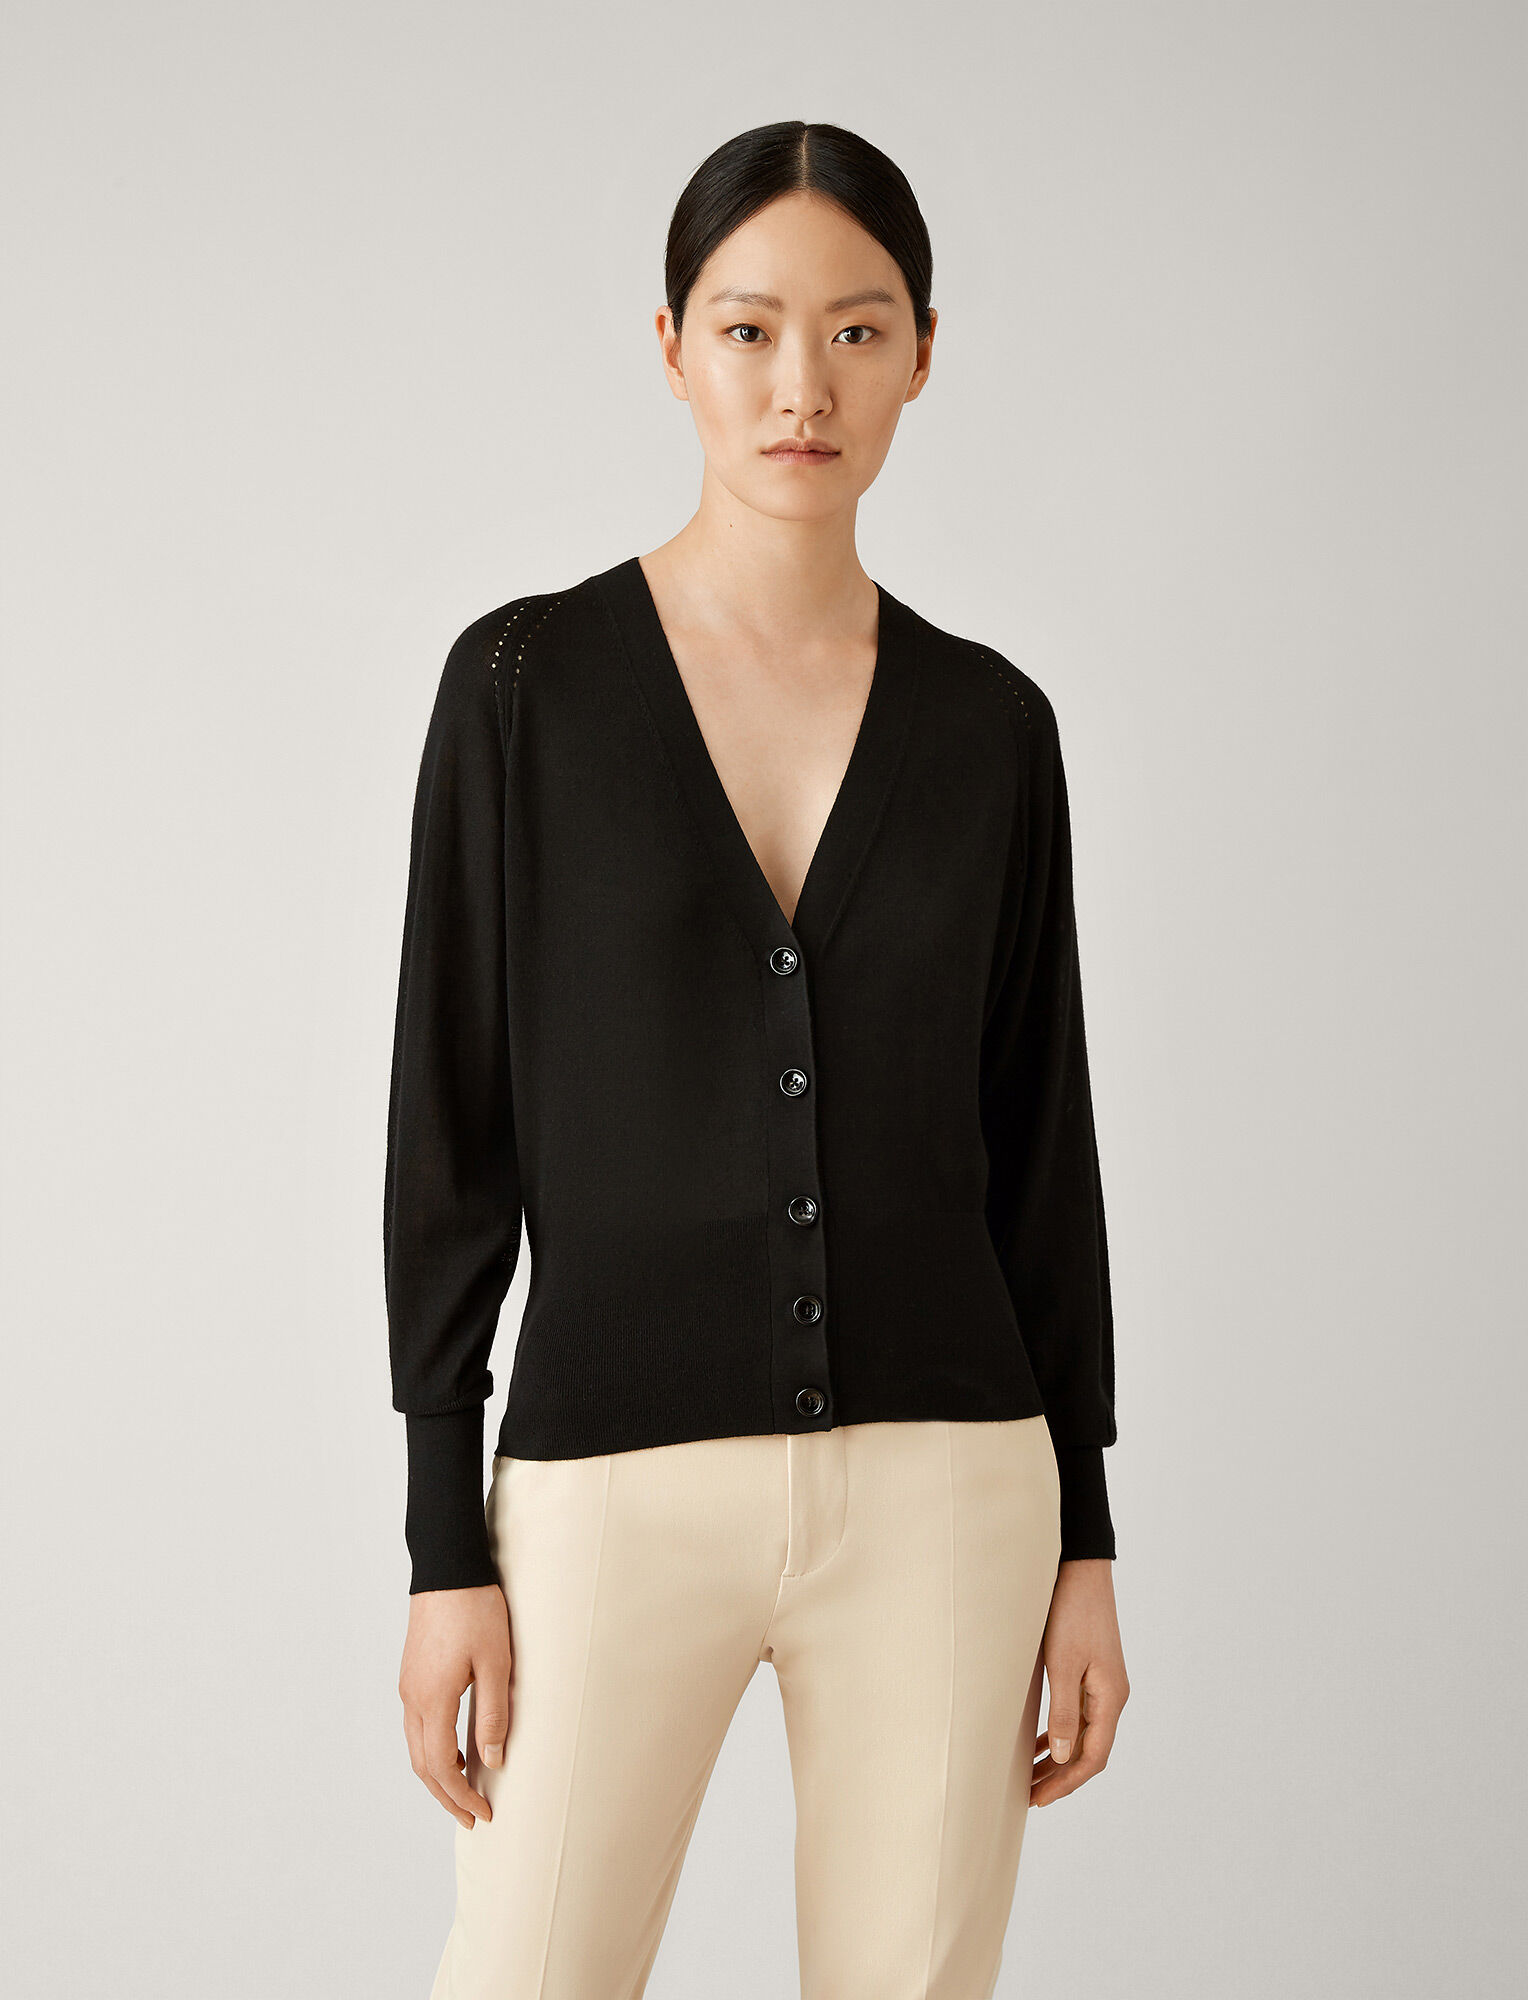 Joseph, Silk Merinos Knit Cardigan, in BLACK